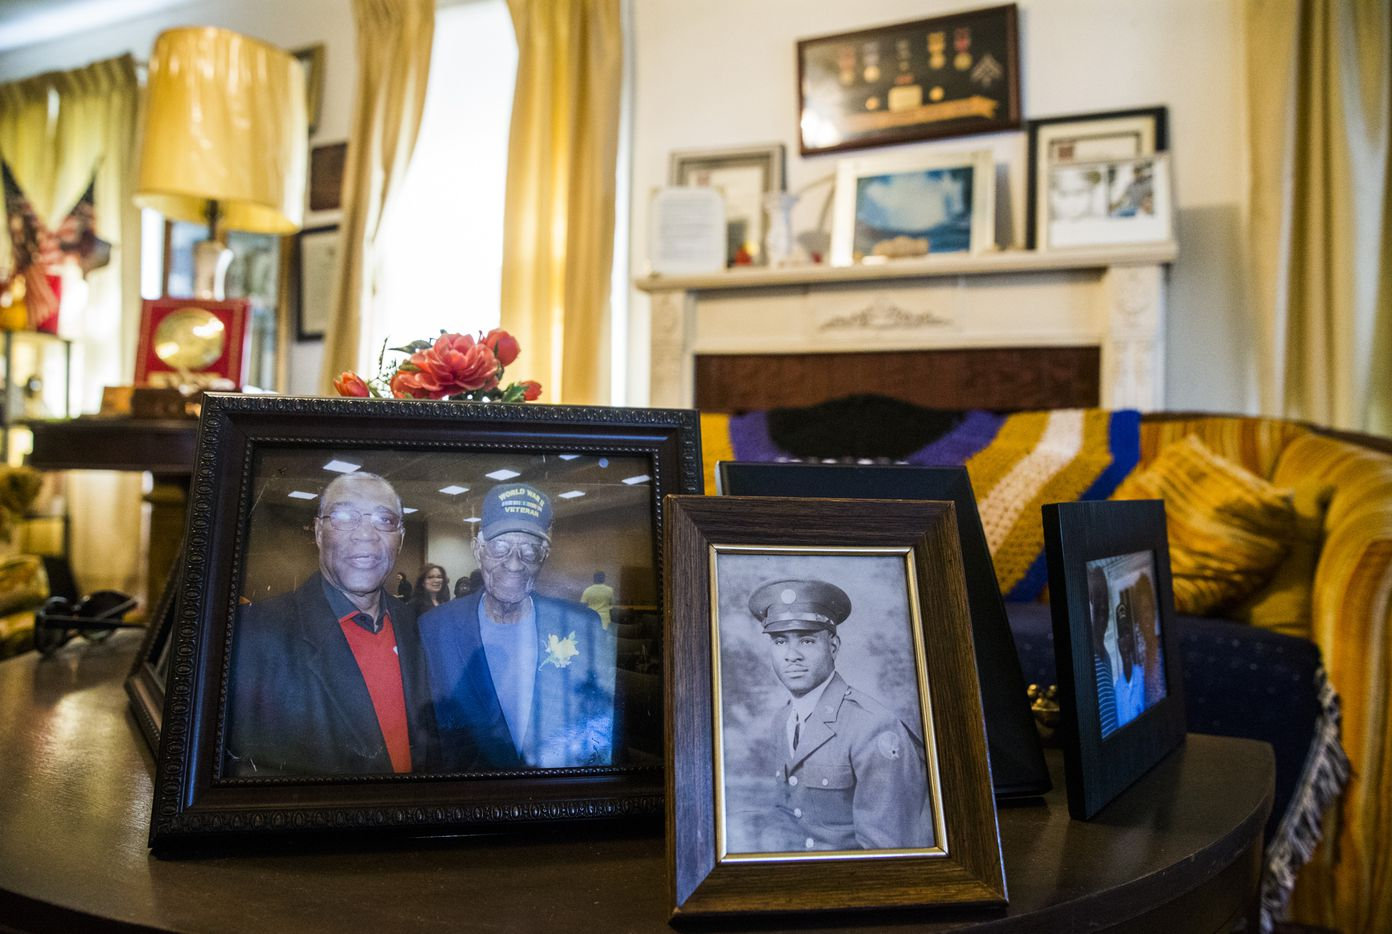 Photographs and other mementos belonging to Richard Overton, 111, are displayed in his home in Austin, Texas. Overton is the oldest living U.S. war veteran.